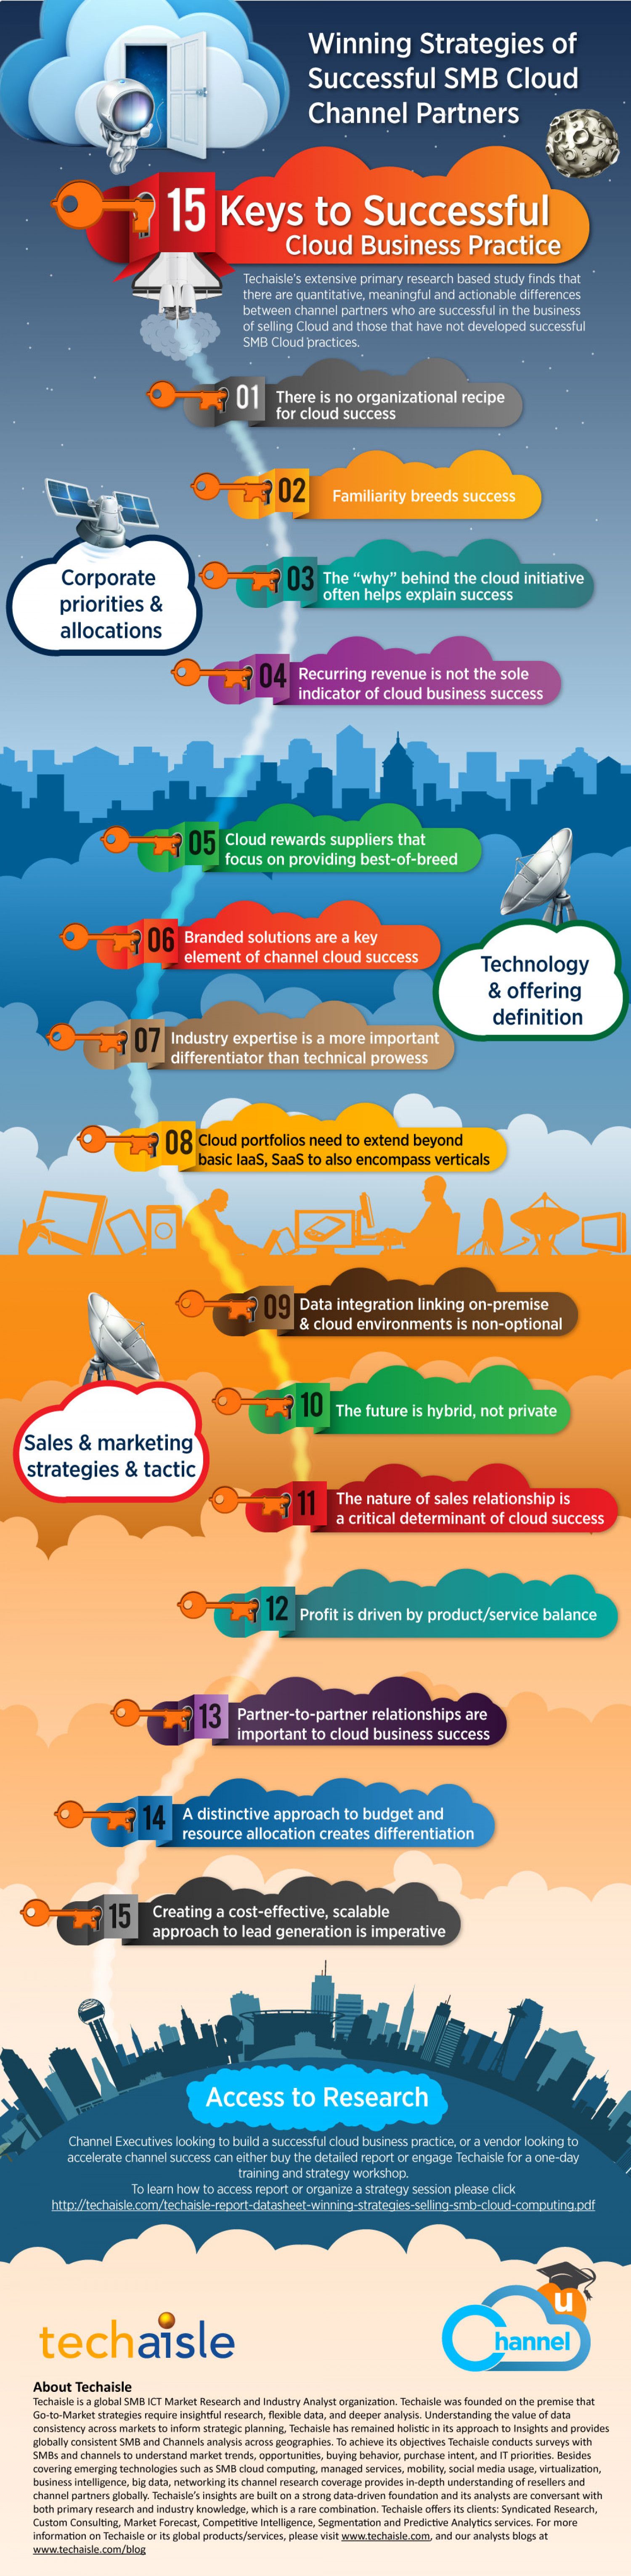 15 Keys to Successful Cloud Business Practice Infographic